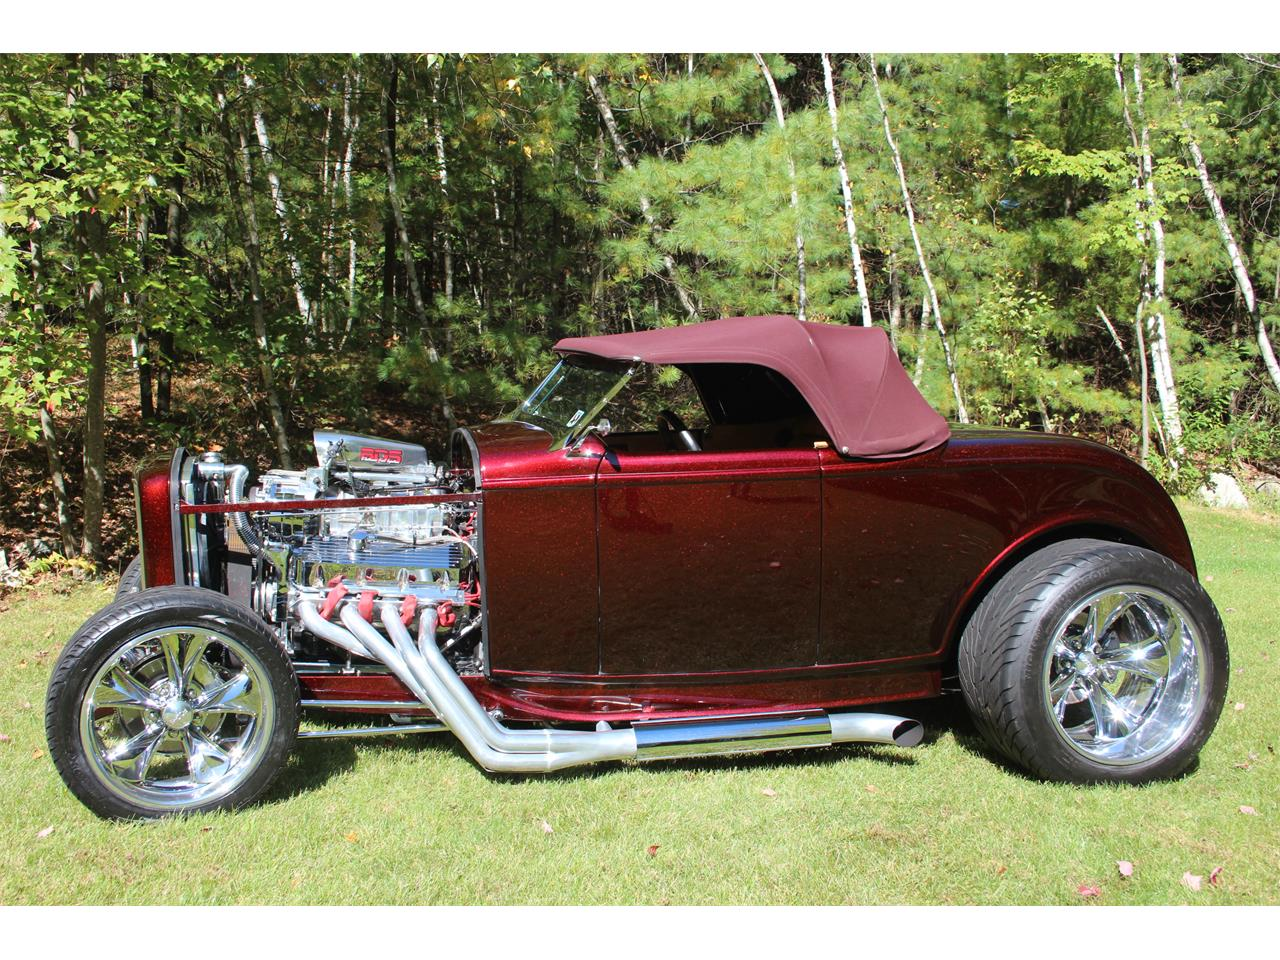 Large picture of classic 1932 ford roadster hkjv